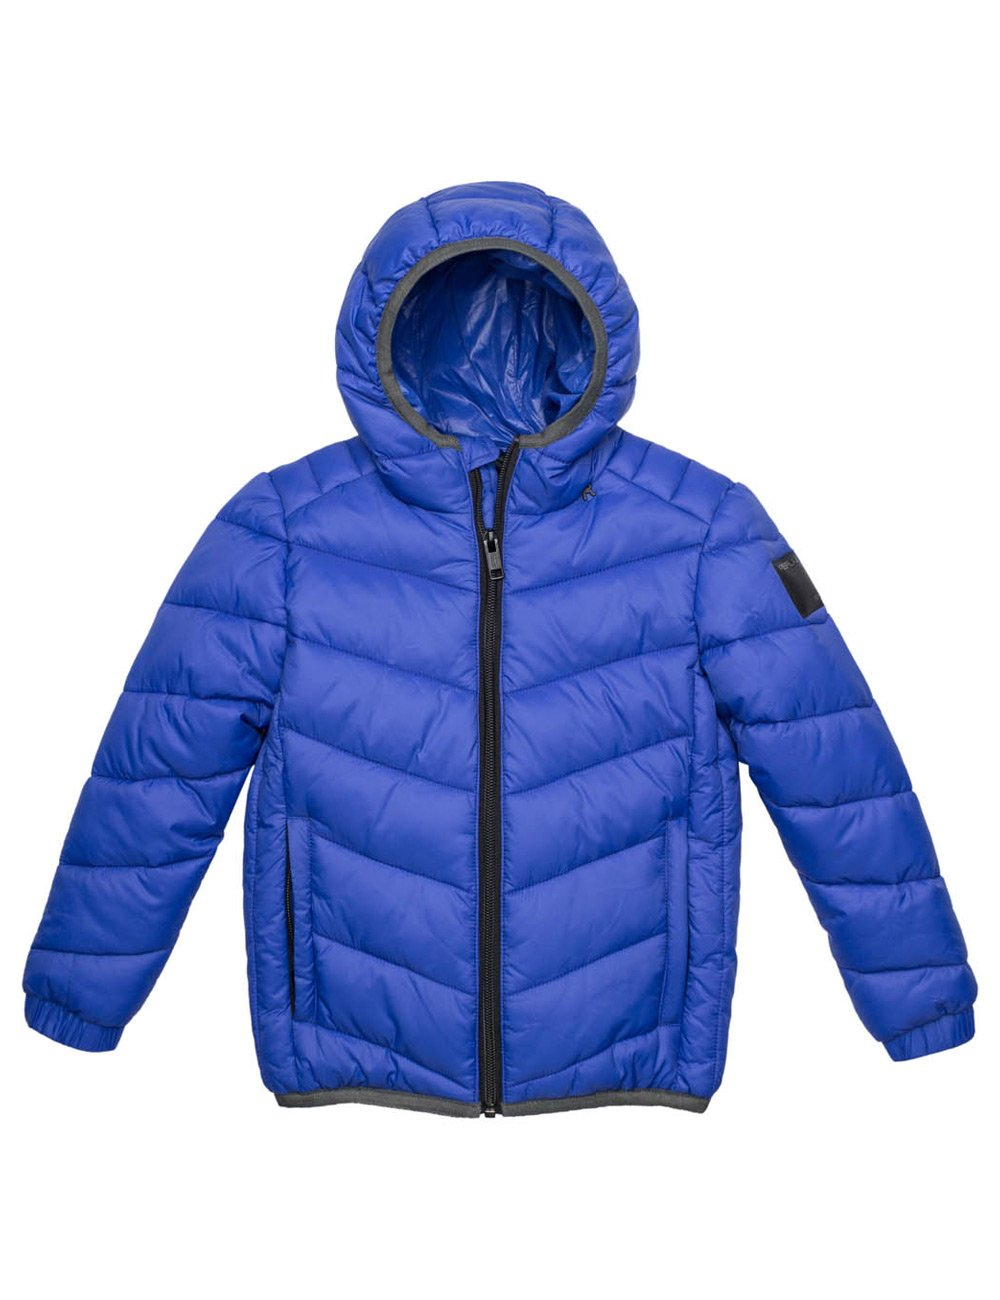 Replay Boy's Blue Quilted Jacket in Size 6 Years Blue